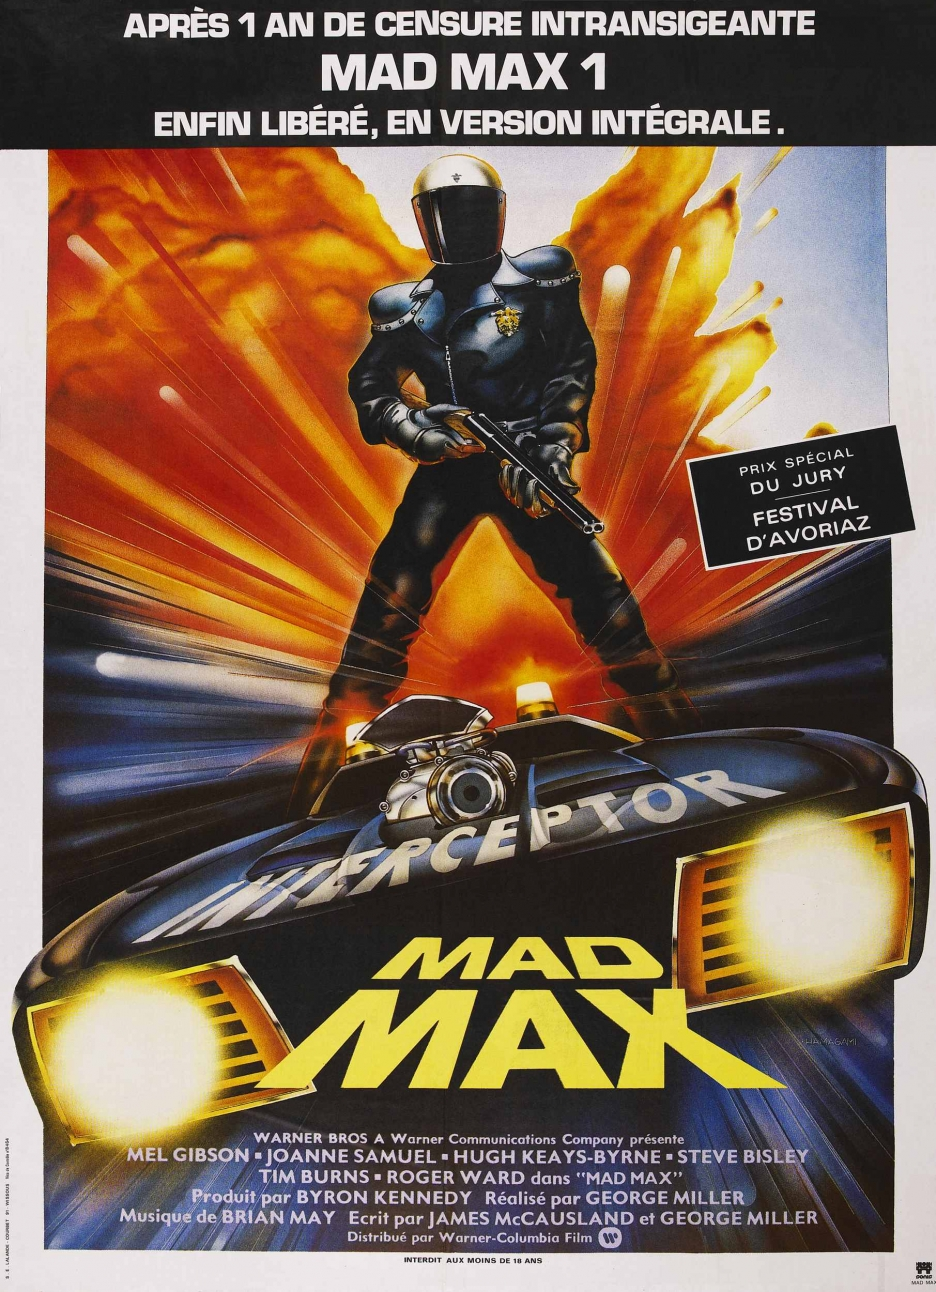 The Geeky Nerfherder: Movie Poster Art: Mad Max Trilogy (1979-1985)